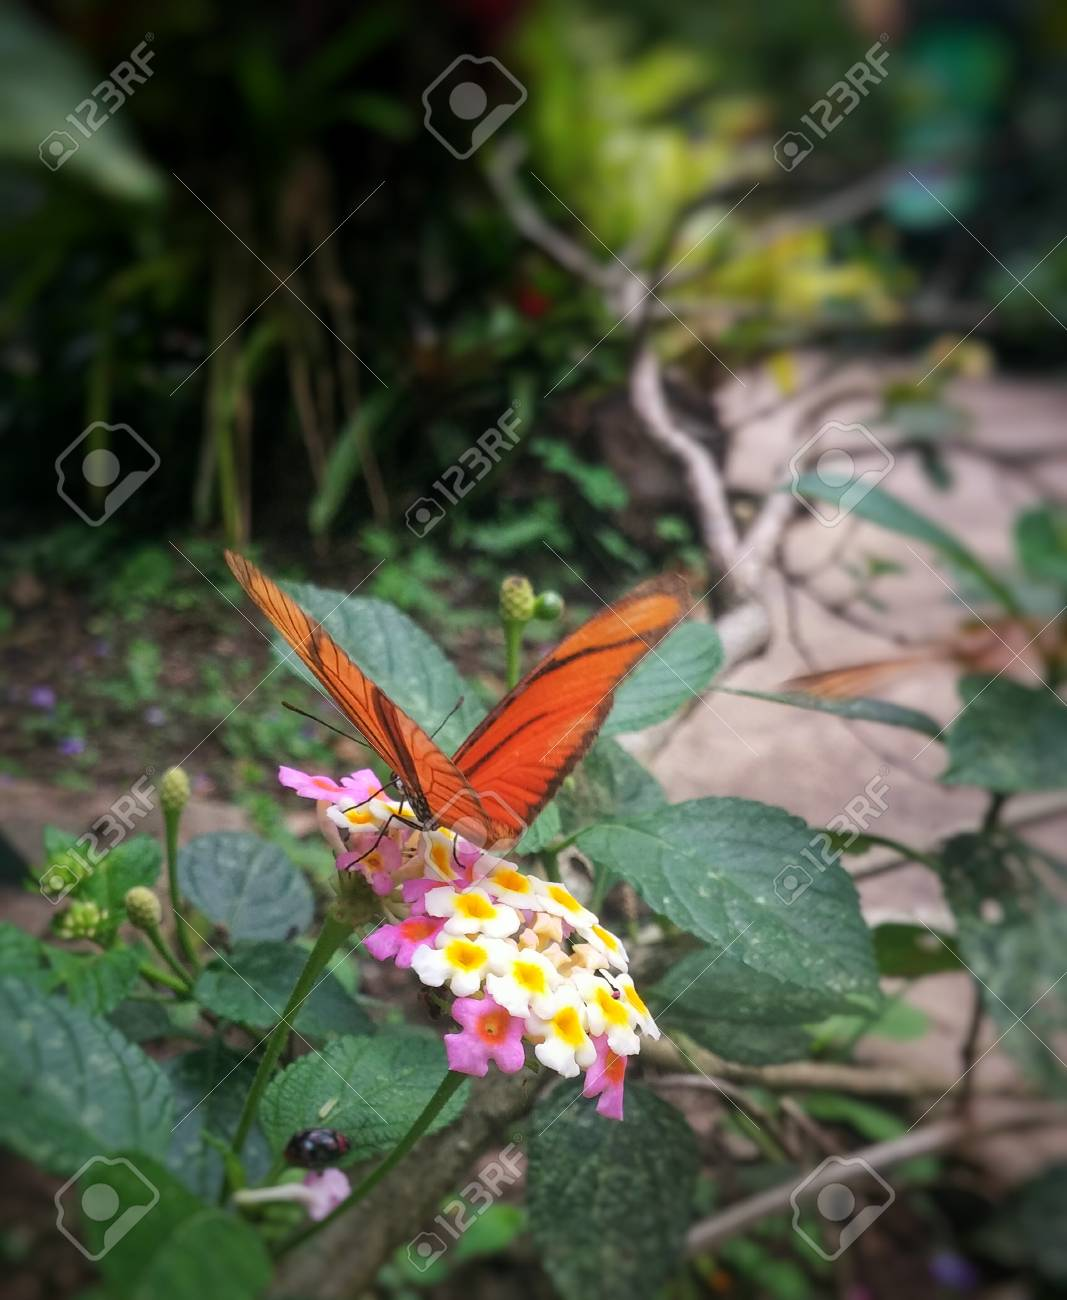 Orange Butterfly With Black Stripes On Wings Perched On Small